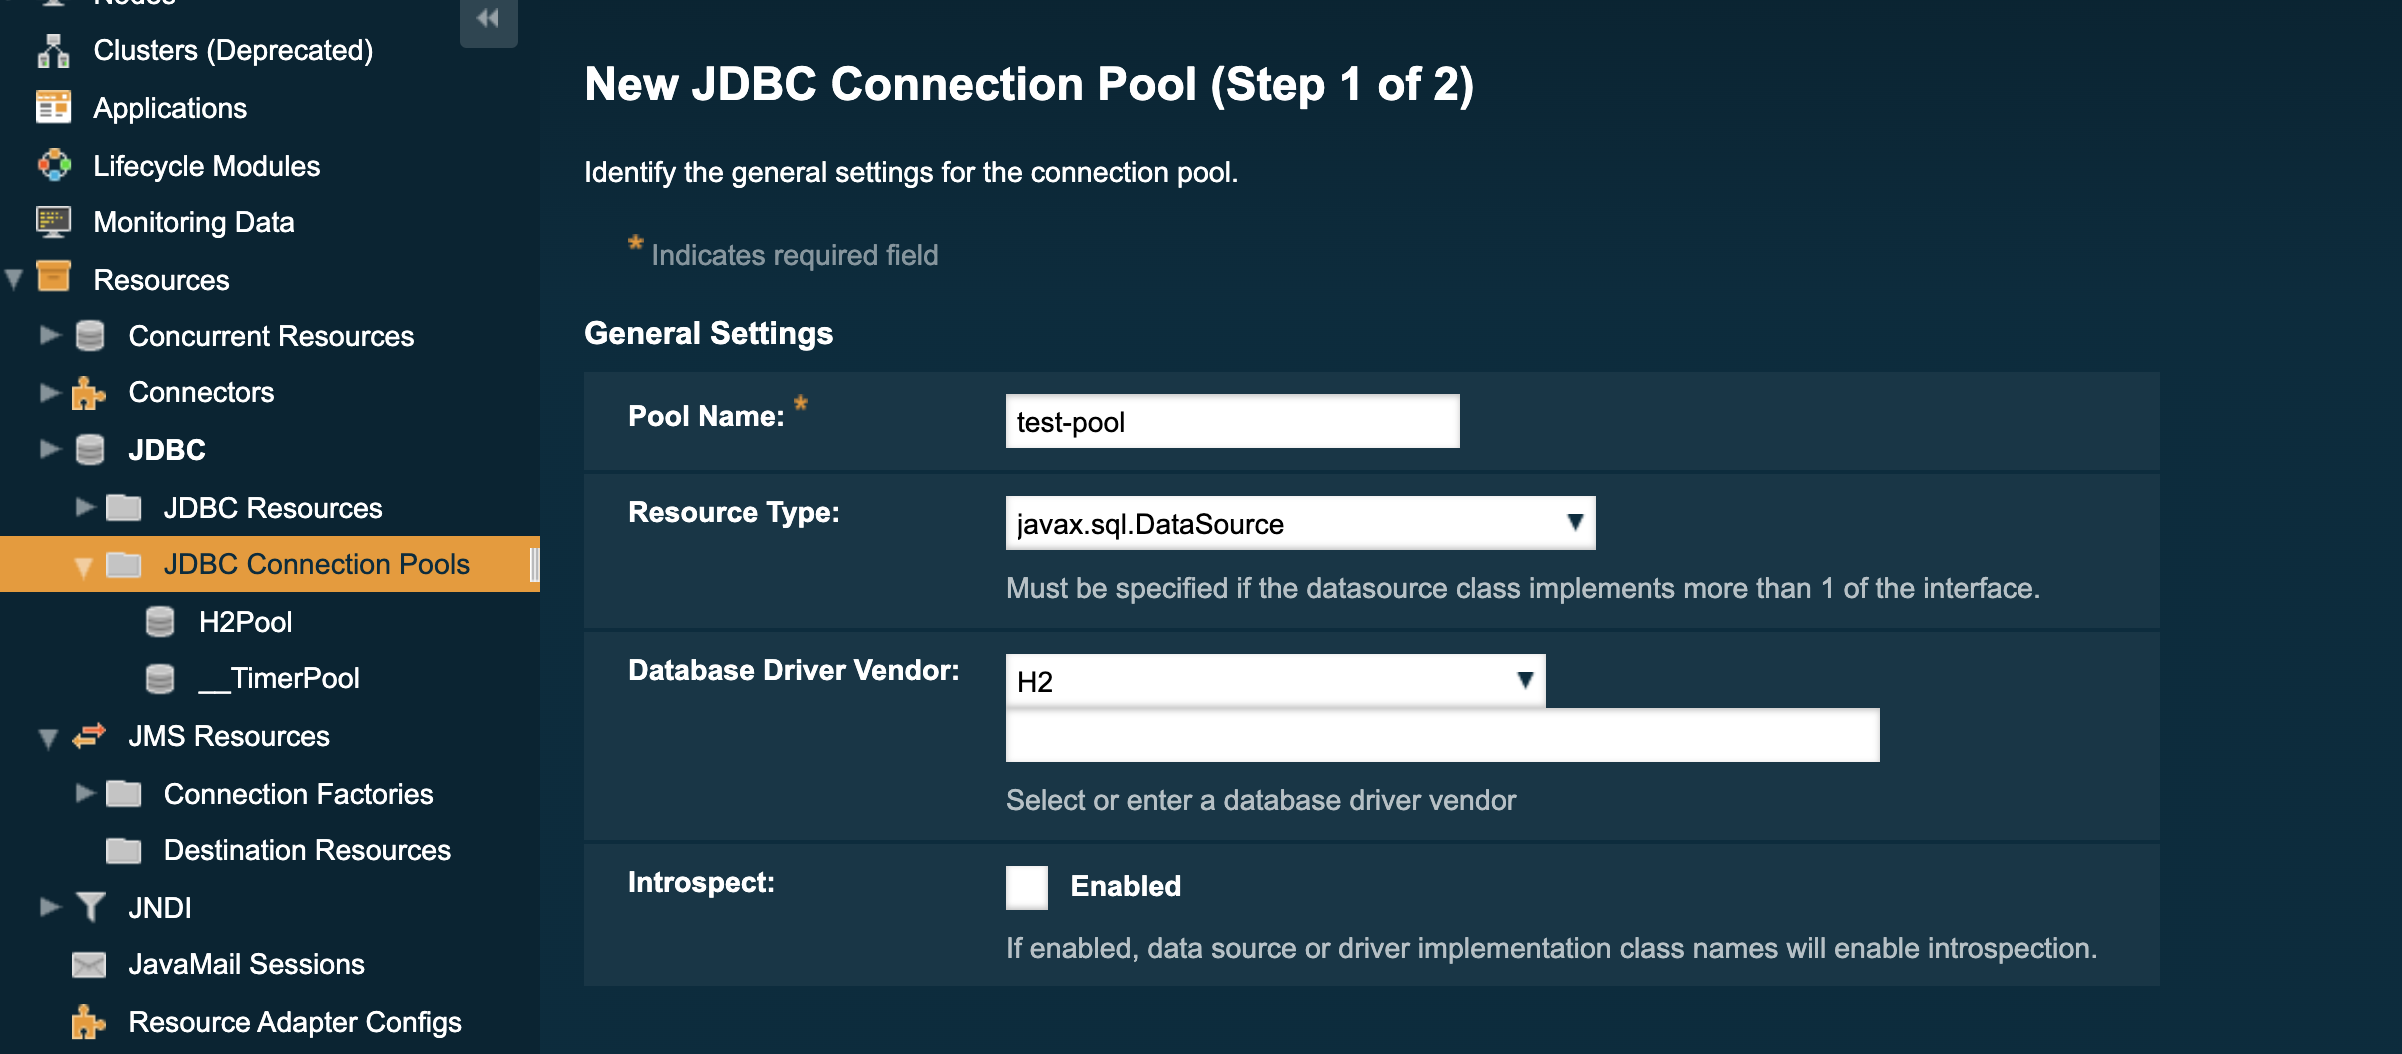 New JDBC Connection Pool